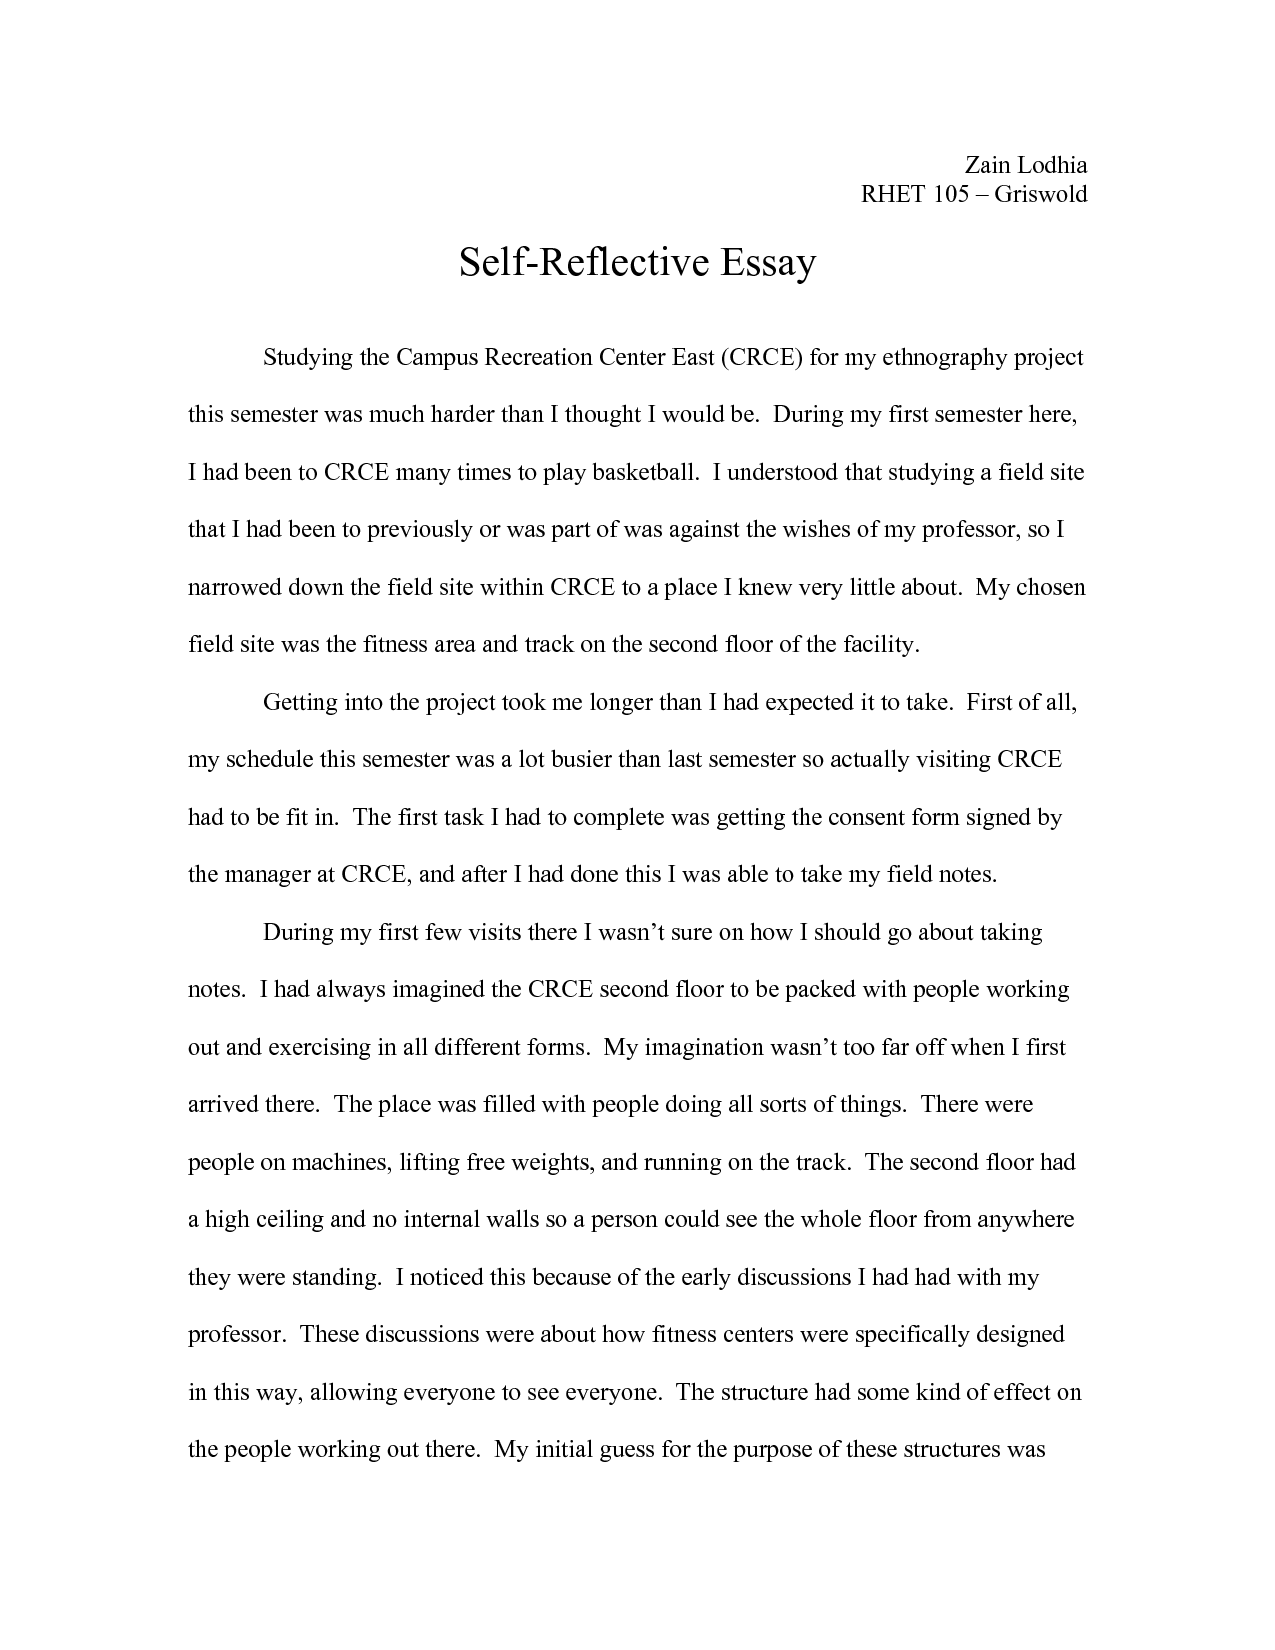 003 Qal0pwnf46 Reflective Essays Beautiful Essay Examples For Middle School Apa High Full